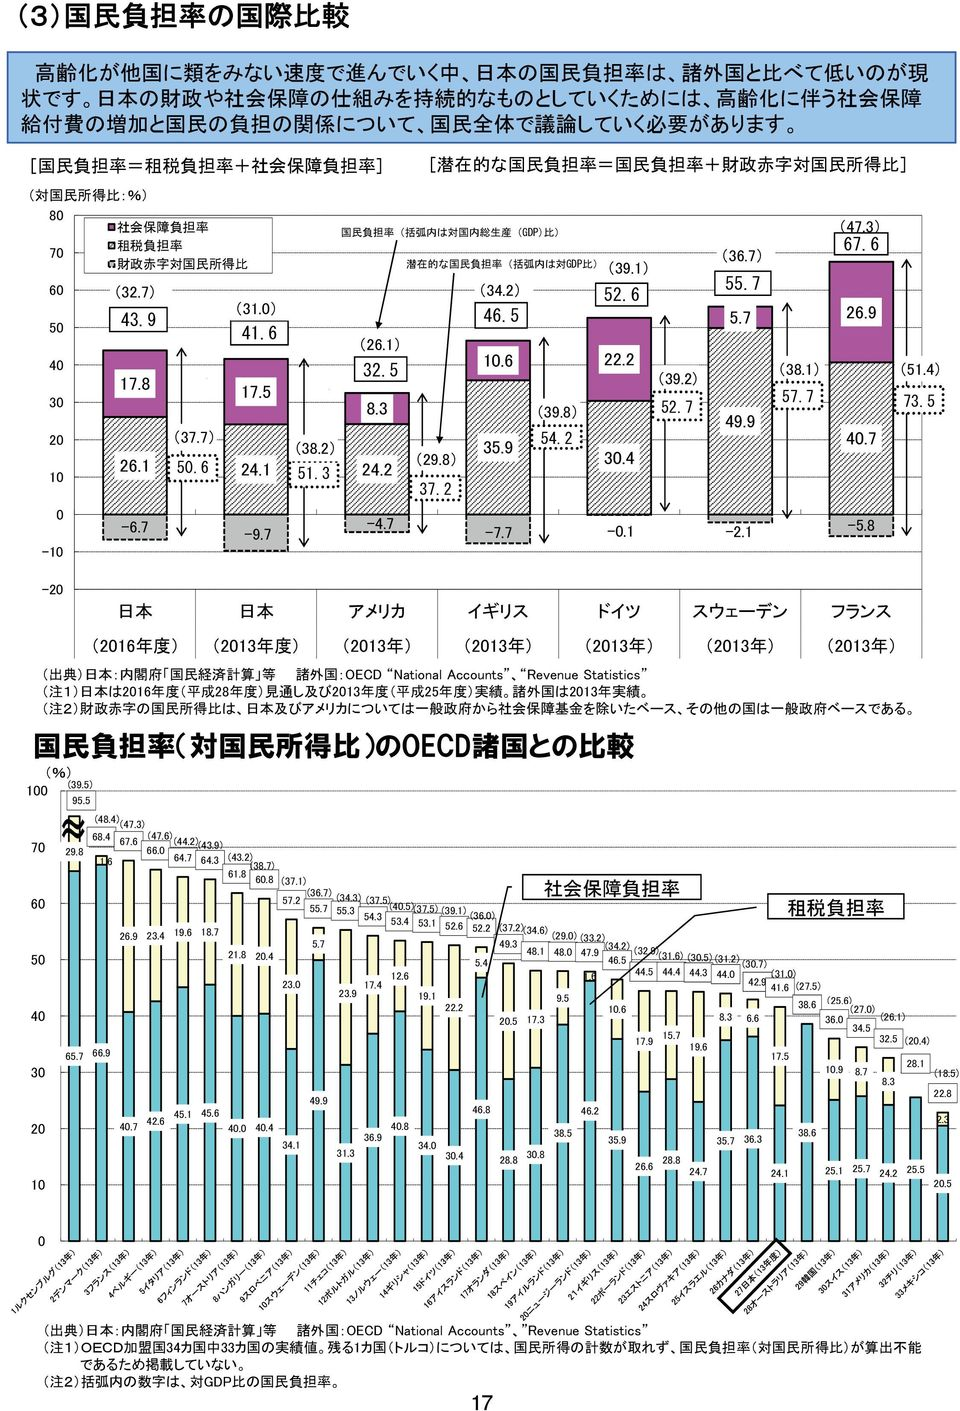 (GDP) 比 ) 租 税 負 担 率 7 財 政 赤 字 対 国 民 所 得 比 潜 在 的 な 国 民 負 担 率 ( 括 弧 内 は 対 GDP 比 ) (39.1) 6 (32.7) (34.2) 52.6 (31.) 5 43.9 46.5 41.6 (26.1) 4 1.6 22.2 32.5 (39.2) 3 2 1-1 17.8 (37.7) (38.2) 26.1 5.6 24.